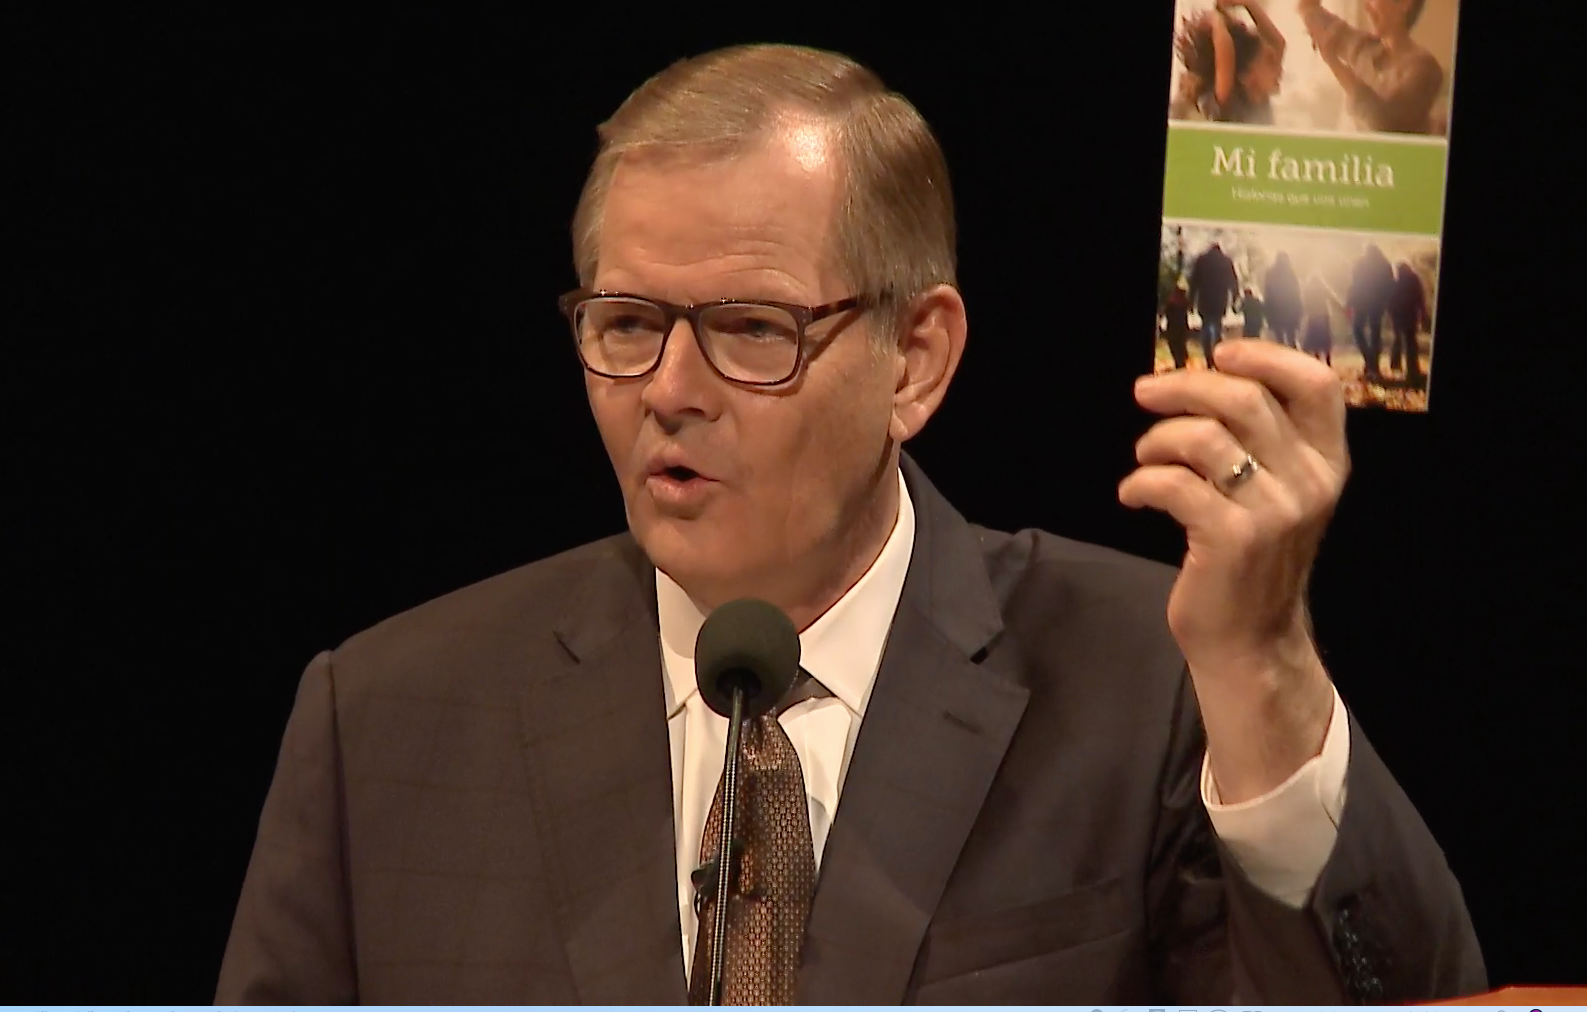 """Elder Gary E. Stevenson of the Quorum of the Twelve Apostles speaks about family history tools while holding a """"My Family"""" booklet. The image is from a screenshot from the Feb. 28 broadcast of the instruction meeting to ward and stake leaders and members with temple and family history work callings and responsibilities."""